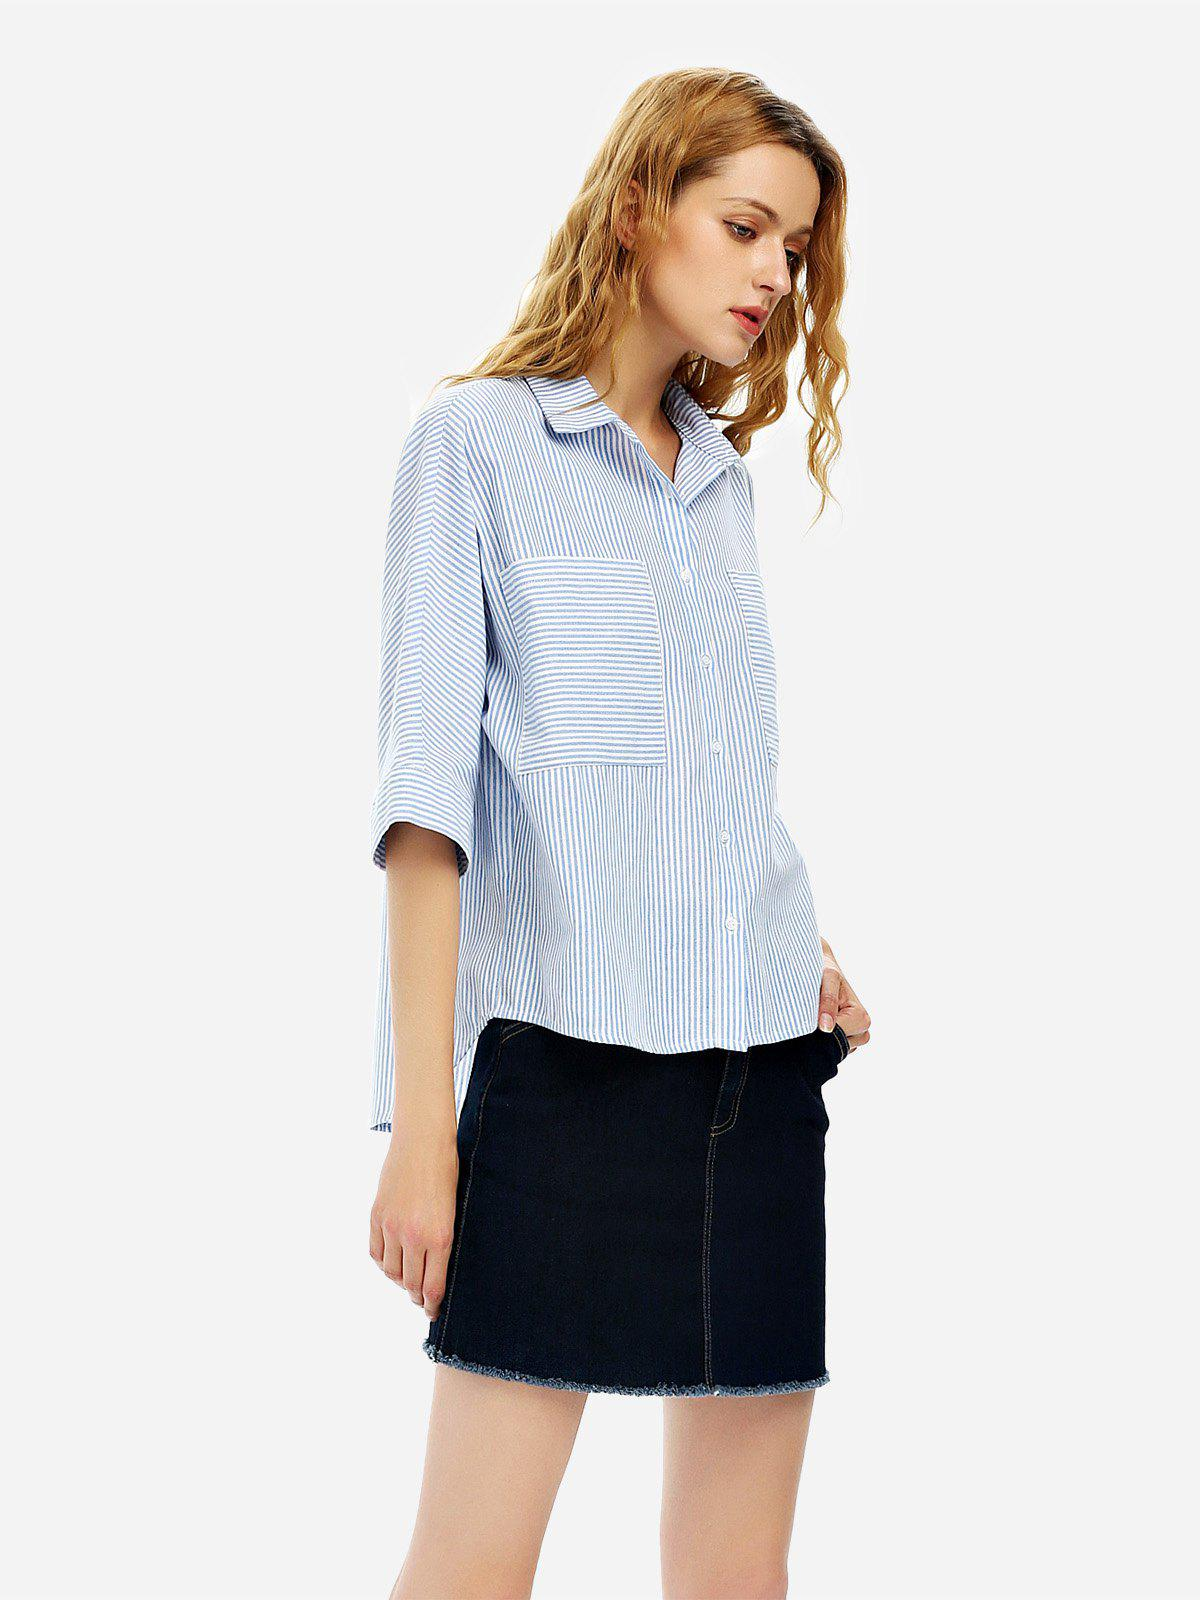 Discount 3/4 Sleeve Collar Blouse